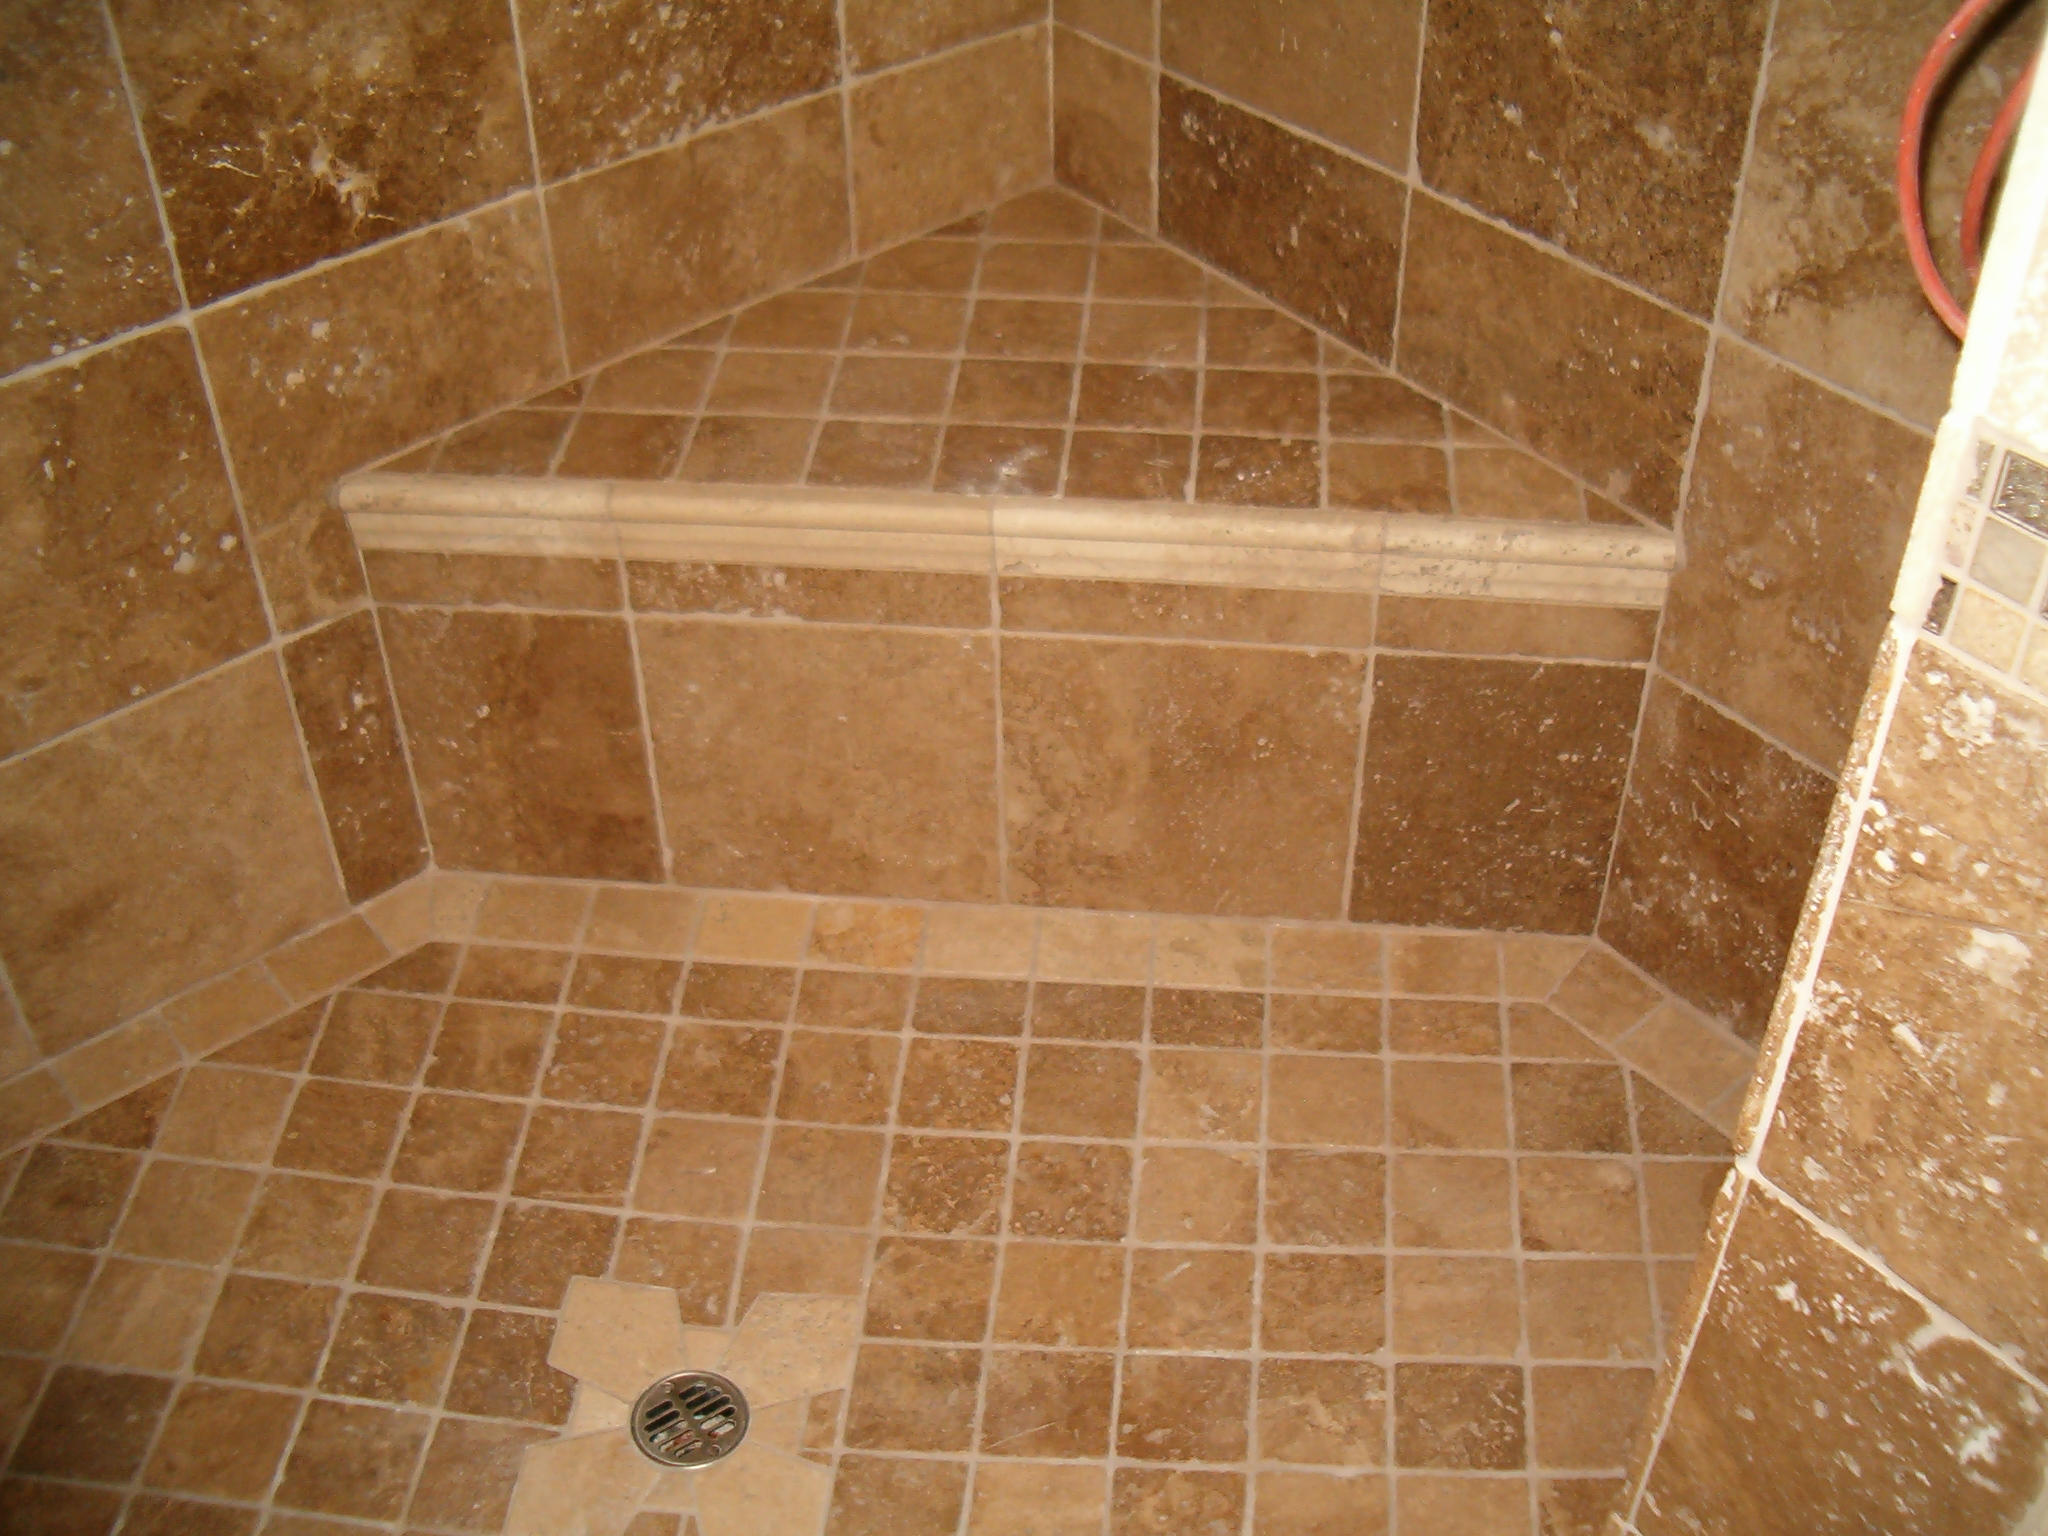 Shower anatomy for Bathroom porcelain tile designs